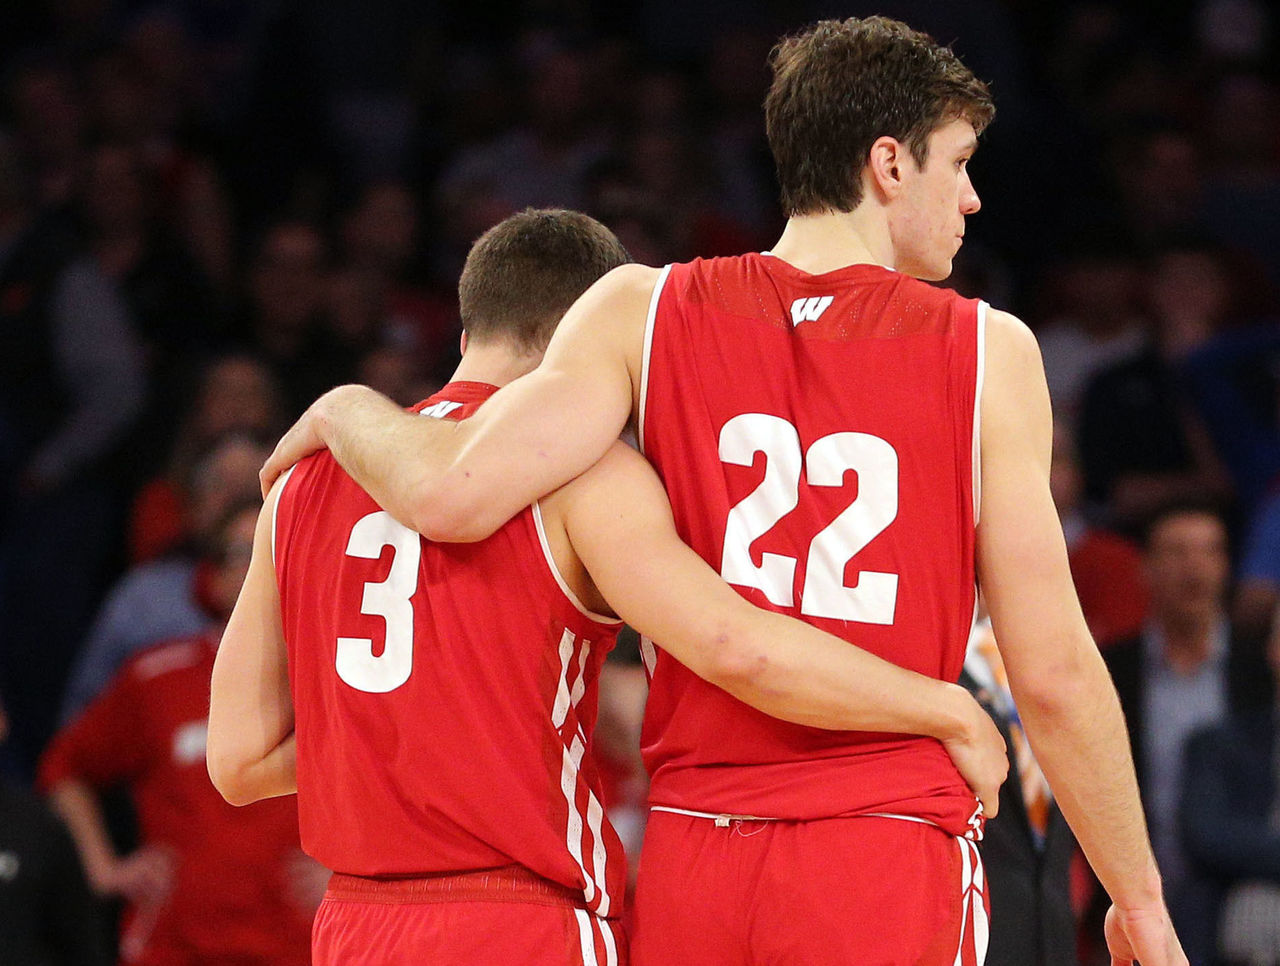 Cropped_2017-03-25t050441z_1722182968_nocid_rtrmadp_3_ncaa-basketball-ncaa-tournament-east-regional-wisconsin-vs-florida